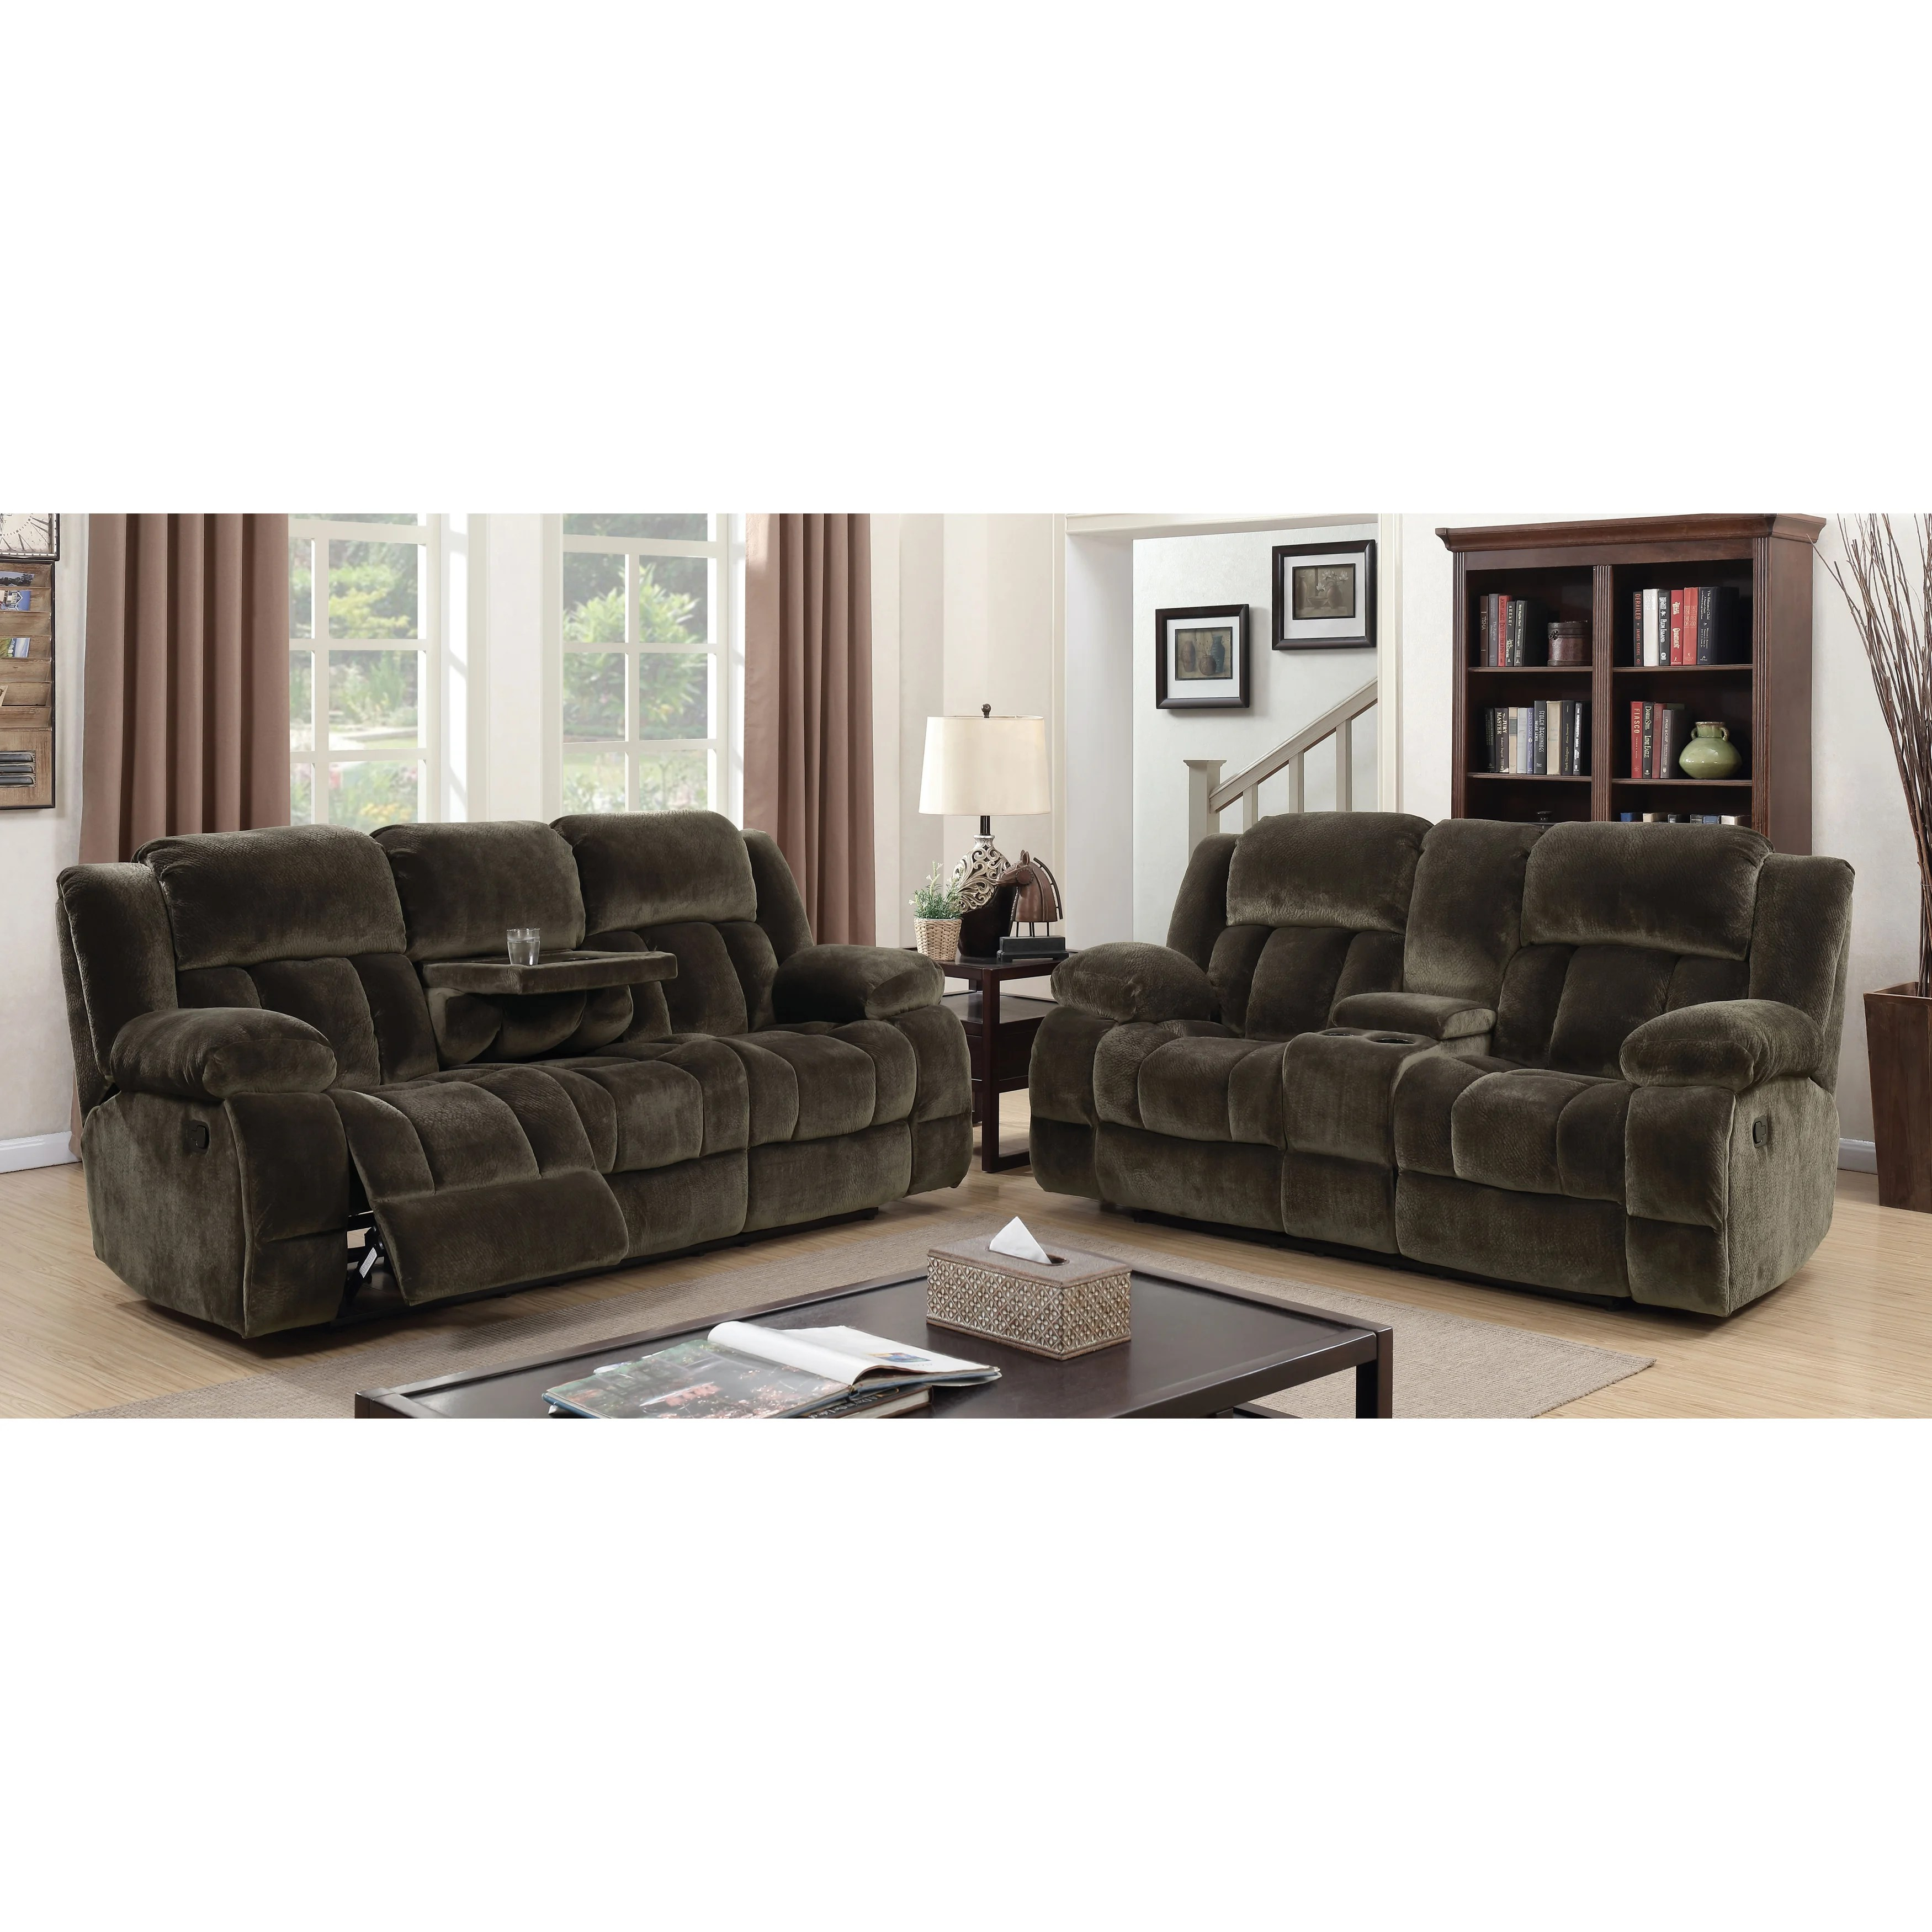 Furniture Of America Ric Traditional Brown 2 Piece Reclining Sofa Set